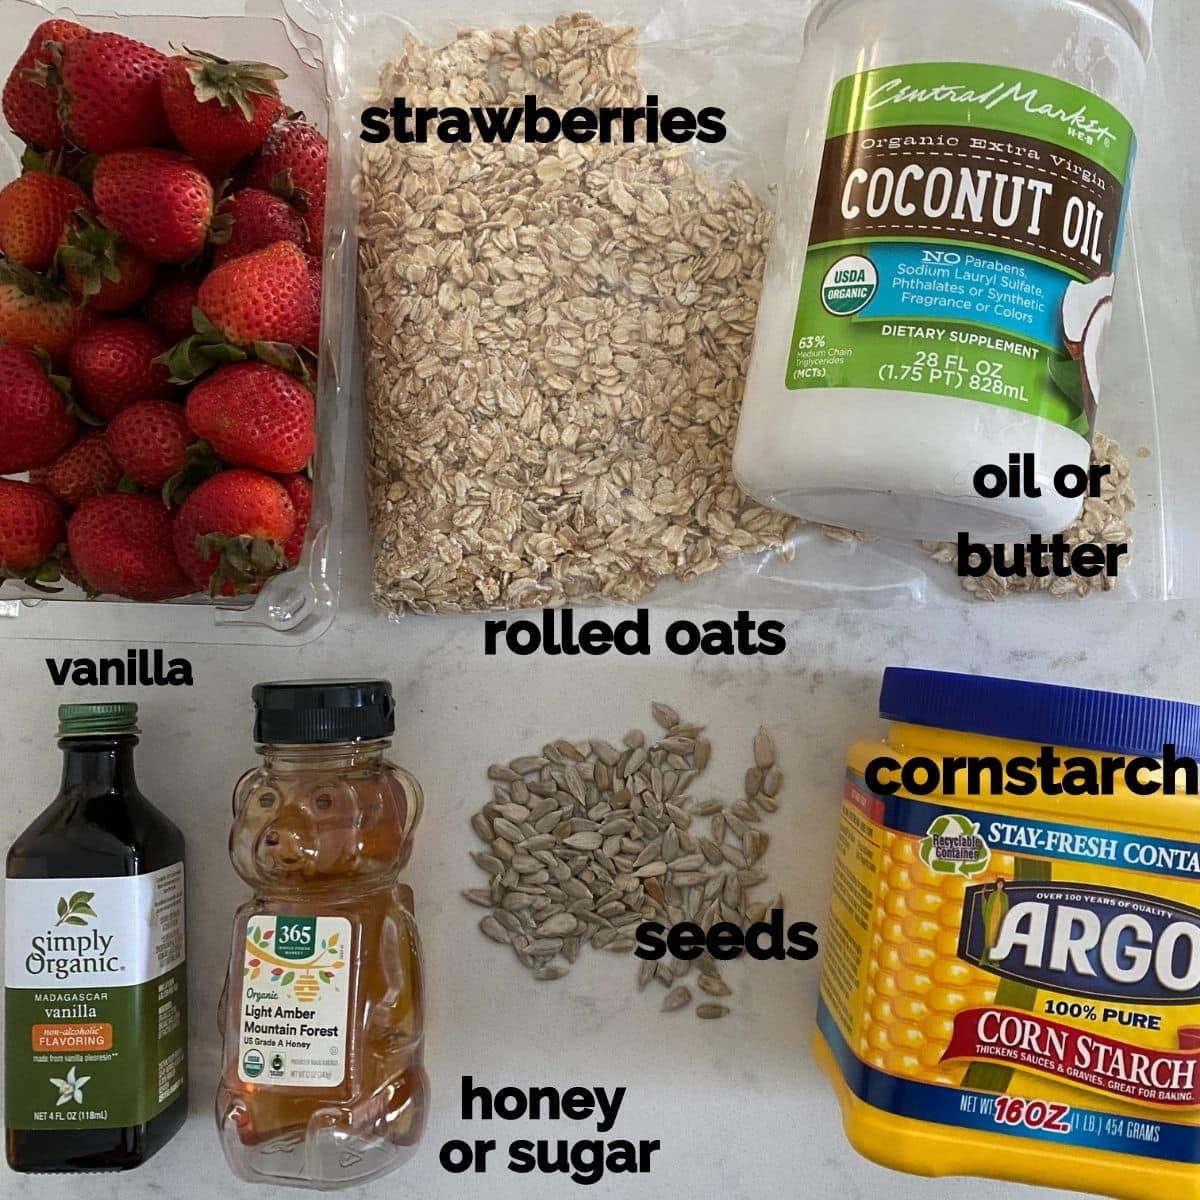 Ingredients for a berry crisp - strawberries, oats, oil, vanilla, sugar, seeds, and cornstarch on a table